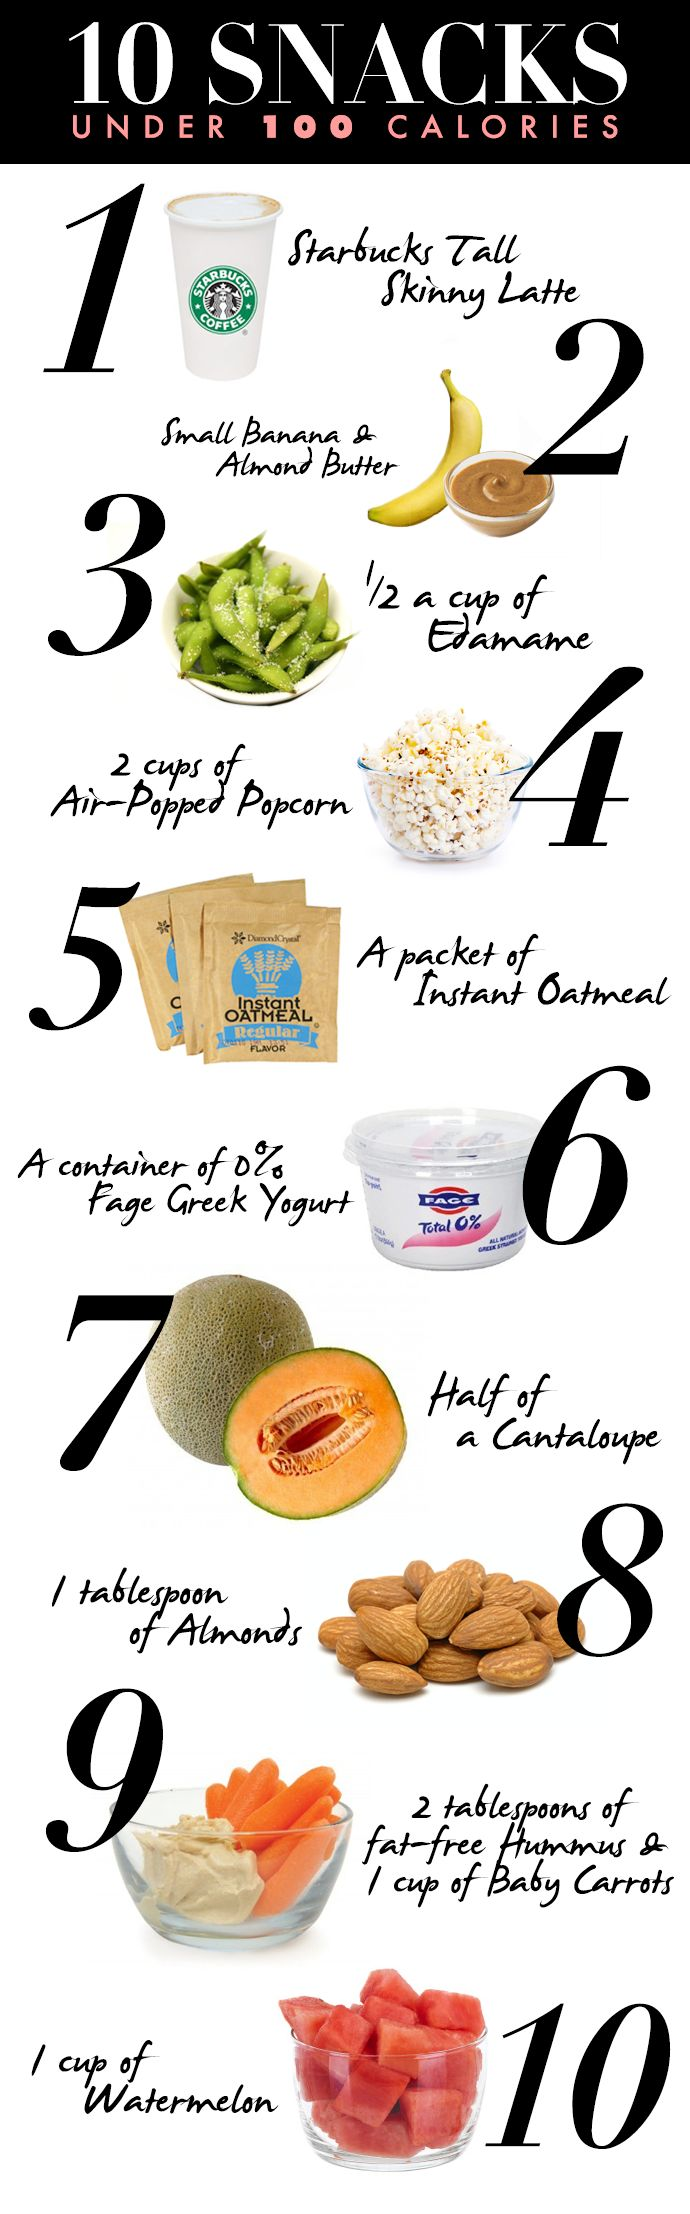 10 Healthy Snacks That Clock in at 100 Calories or Less